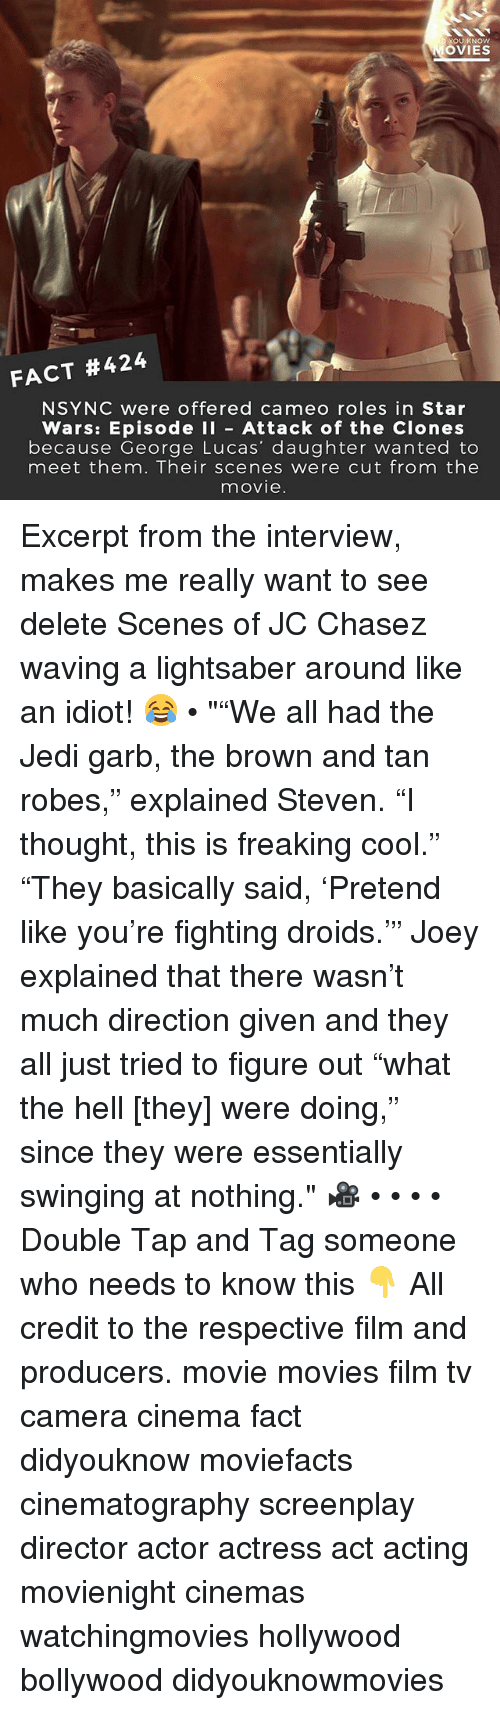 "Filmes: OU KNOW  OVIES  FACT #424  NSYNC were offered cameo roles in Star  Wars: Episode I Attack of the Clones  because George Lucas' daughter wanted to  meet them. Their scenes were cut from the  movie Excerpt from the interview, makes me really want to see delete Scenes of JC Chasez waving a lightsaber around like an idiot! 😂 • """"We all had the Jedi garb, the brown and tan robes,"" explained Steven. ""I thought, this is freaking cool."" ""They basically said, 'Pretend like you're fighting droids.'"" Joey explained that there wasn't much direction given and they all just tried to figure out ""what the hell [they] were doing,"" since they were essentially swinging at nothing."" 🎥 • • • • Double Tap and Tag someone who needs to know this 👇 All credit to the respective film and producers. movie movies film tv camera cinema fact didyouknow moviefacts cinematography screenplay director actor actress act acting movienight cinemas watchingmovies hollywood bollywood didyouknowmovies"